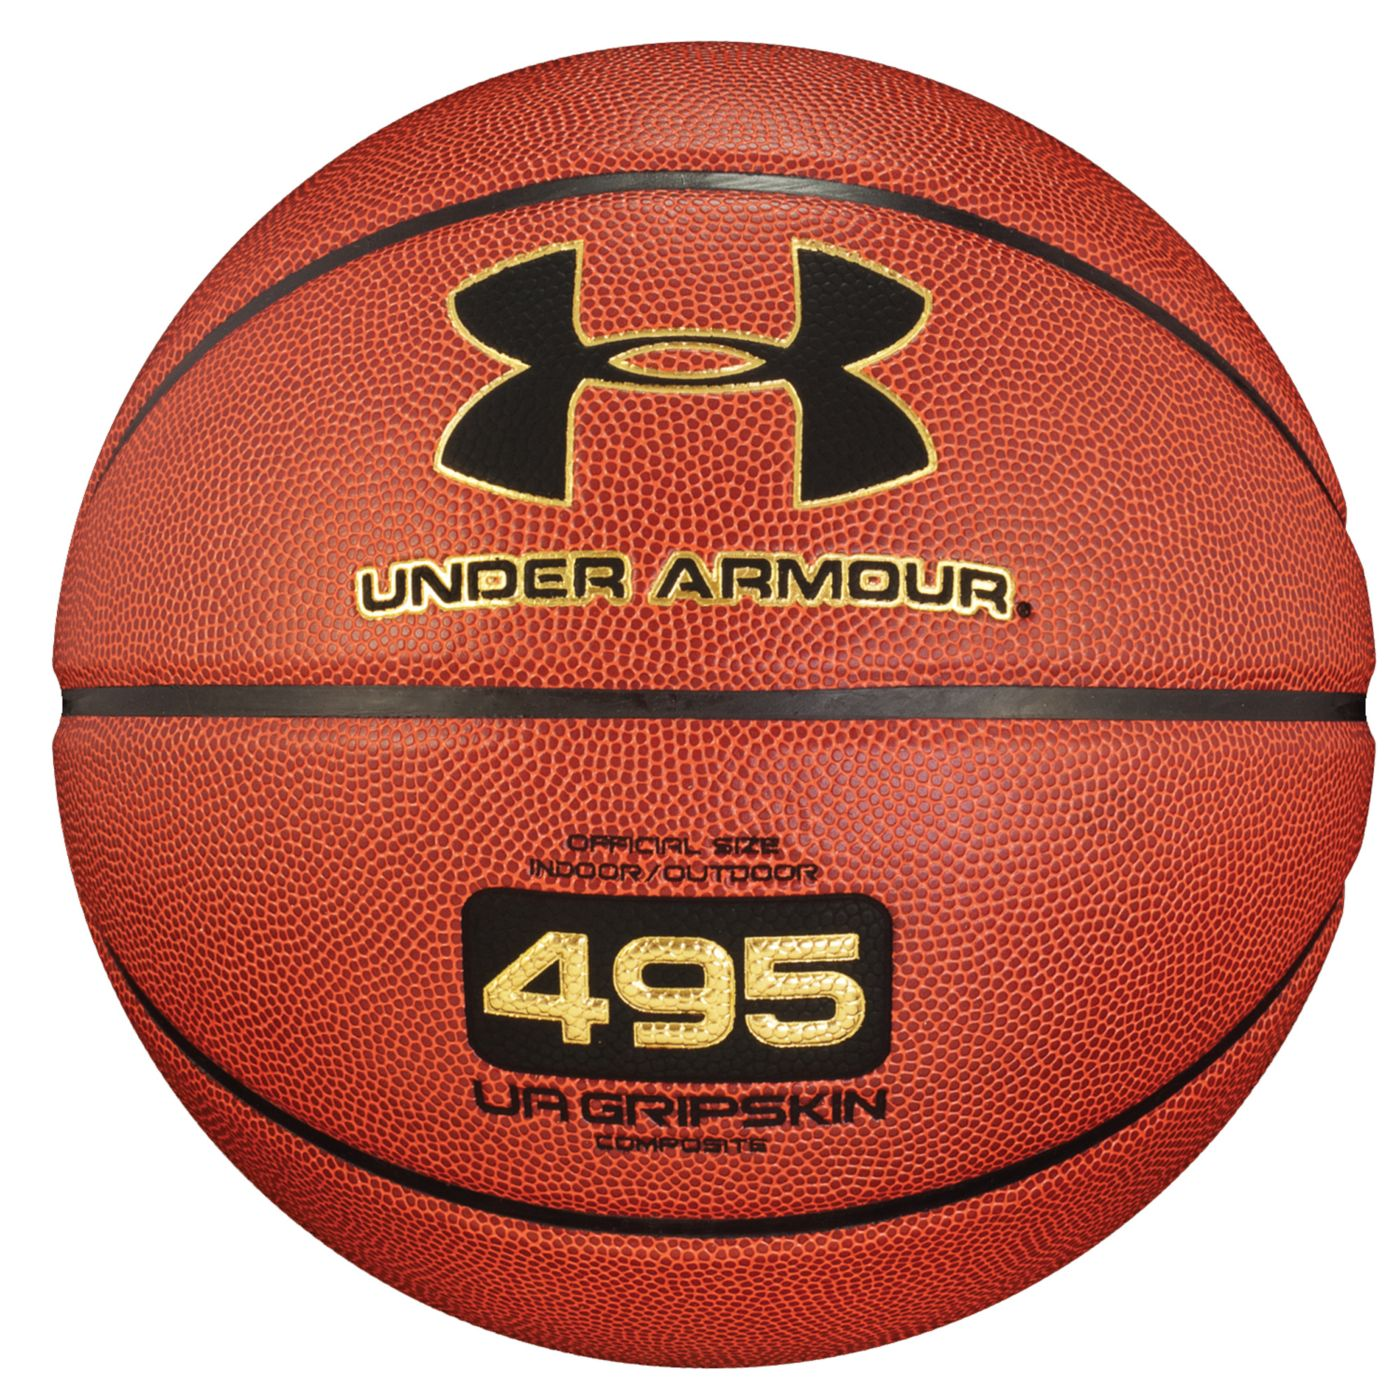 """Under Armour 495 Official Basketball (29.5"""")"""